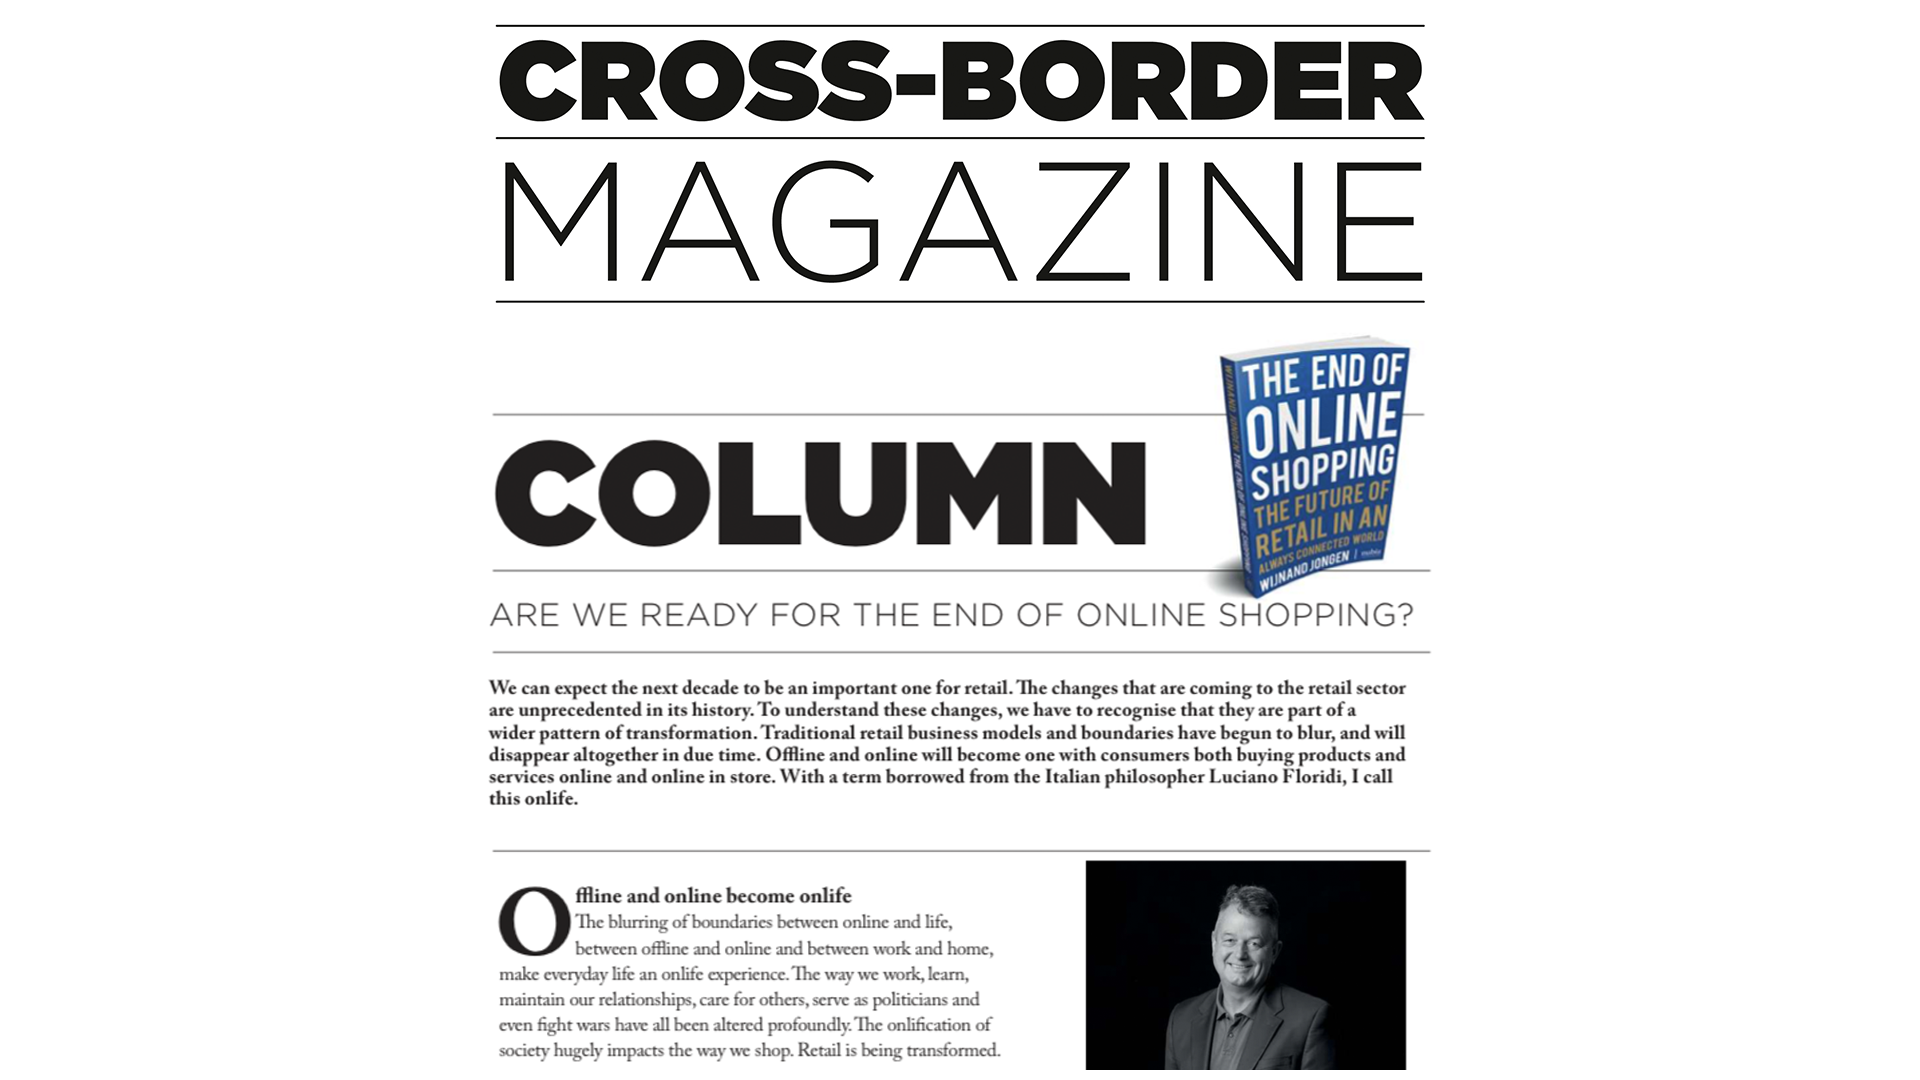 Column 'Are we ready for the end of online shopping' – Cross Border Magazine